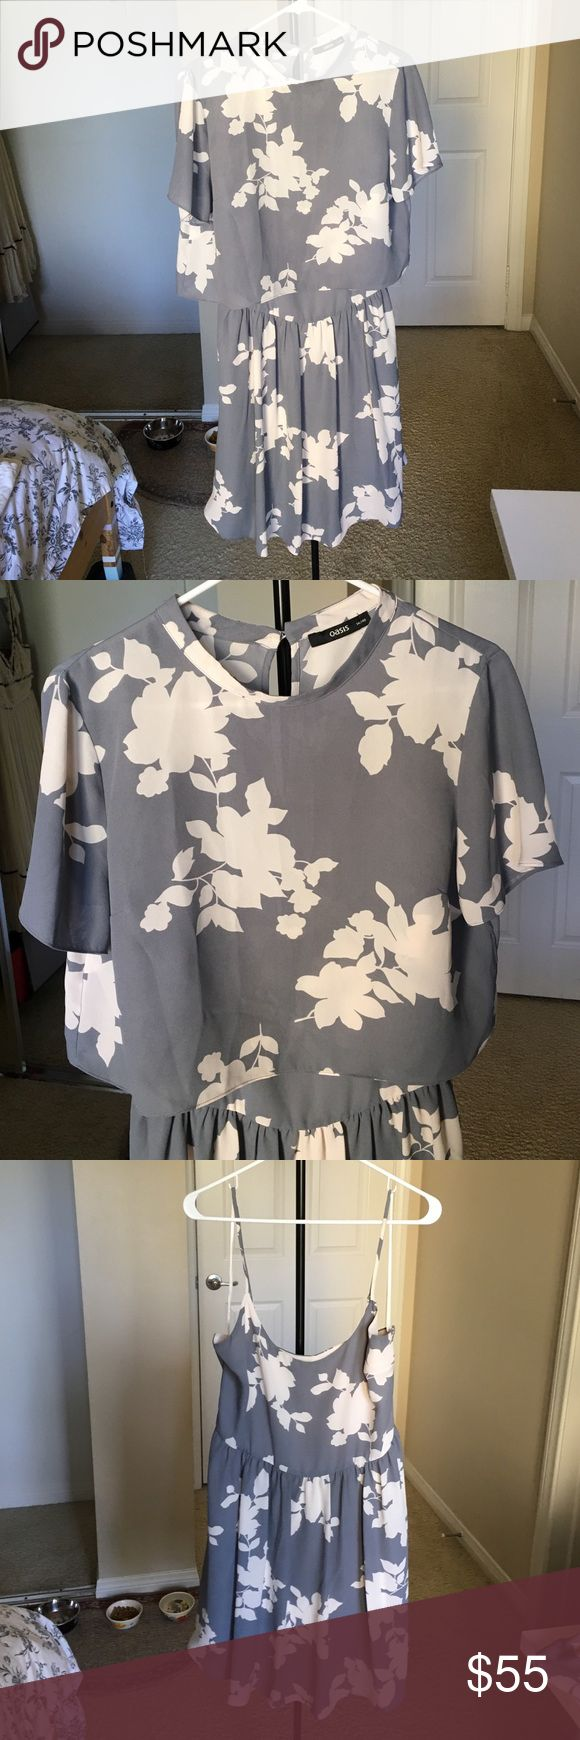 Asos summer dress (2 piece) Only worn once! Top and dress separate. Fits smaller than tag. Willing to PP/Venmo. ASOS Dresses Mini